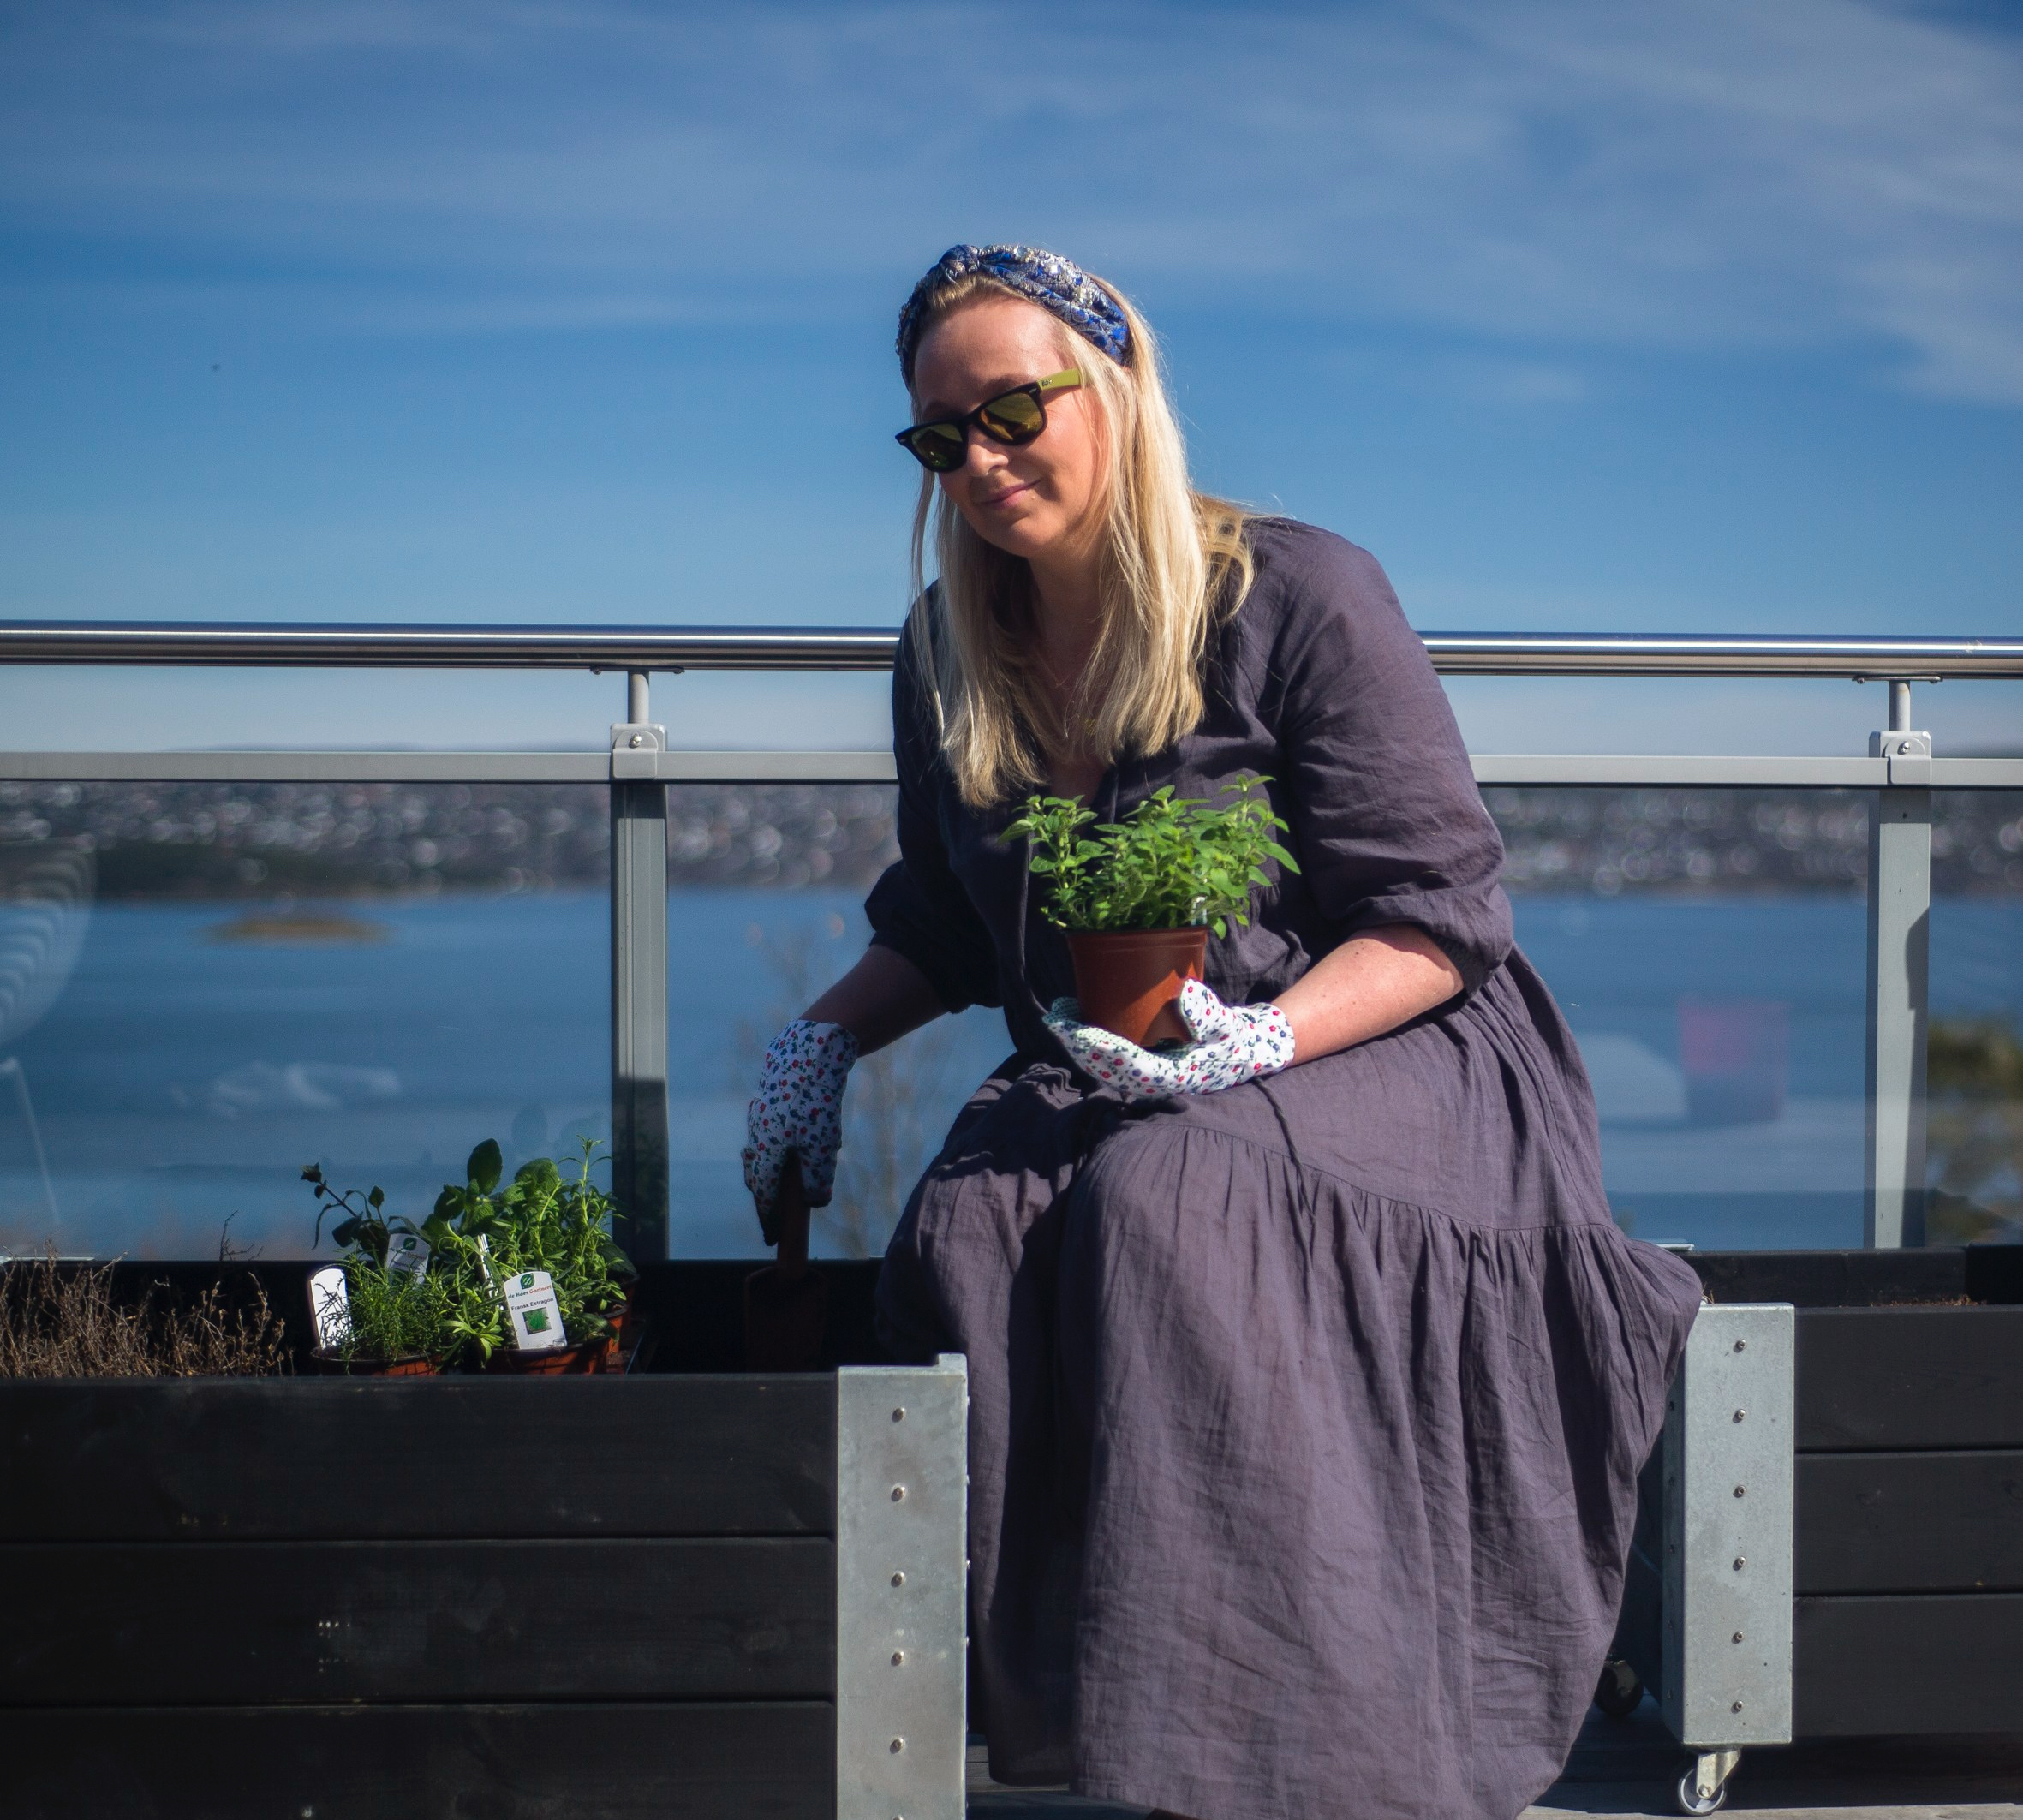 jannicke_planter_urter_takterrassen_april_2018-8457-1-3